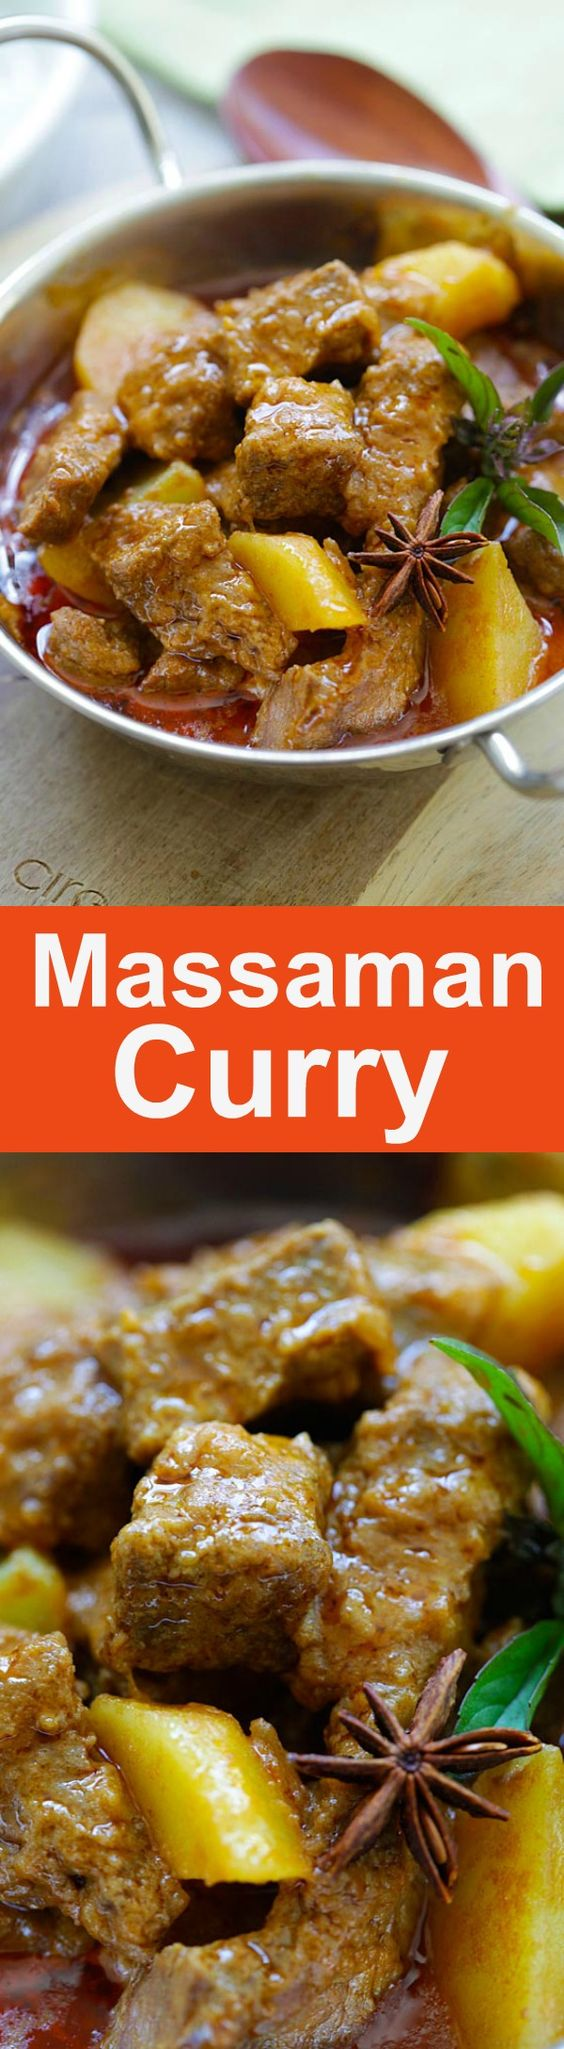 Beef Massaman Curry – crazy delicious Thai beef massaman curry. Learn how to make massaman curry with this easy and fail-proof recipe | rasamalaysia.com